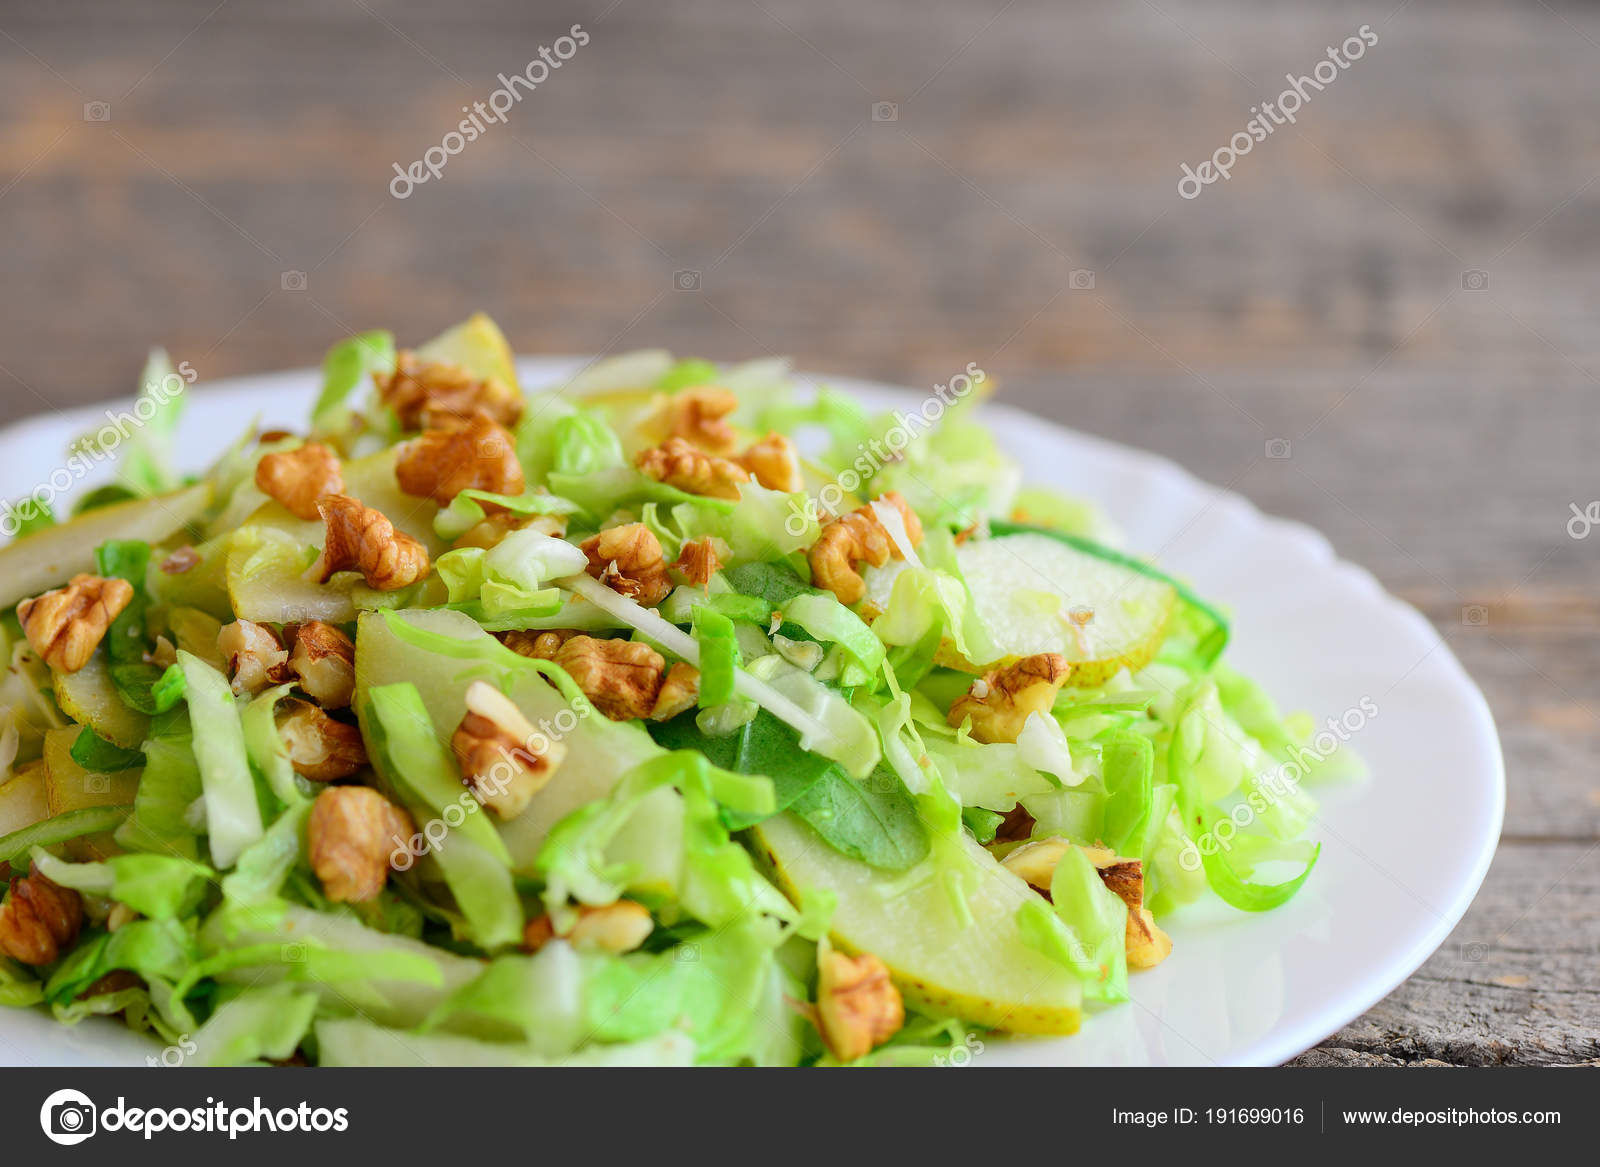 Pear cabbage slaw recipe simple salad raw pear cabbage walnuts raw food diet weight loss stock image pear cabbage slaw recipe simple salad raw pear cabbage walnuts stock photo forumfinder Choice Image